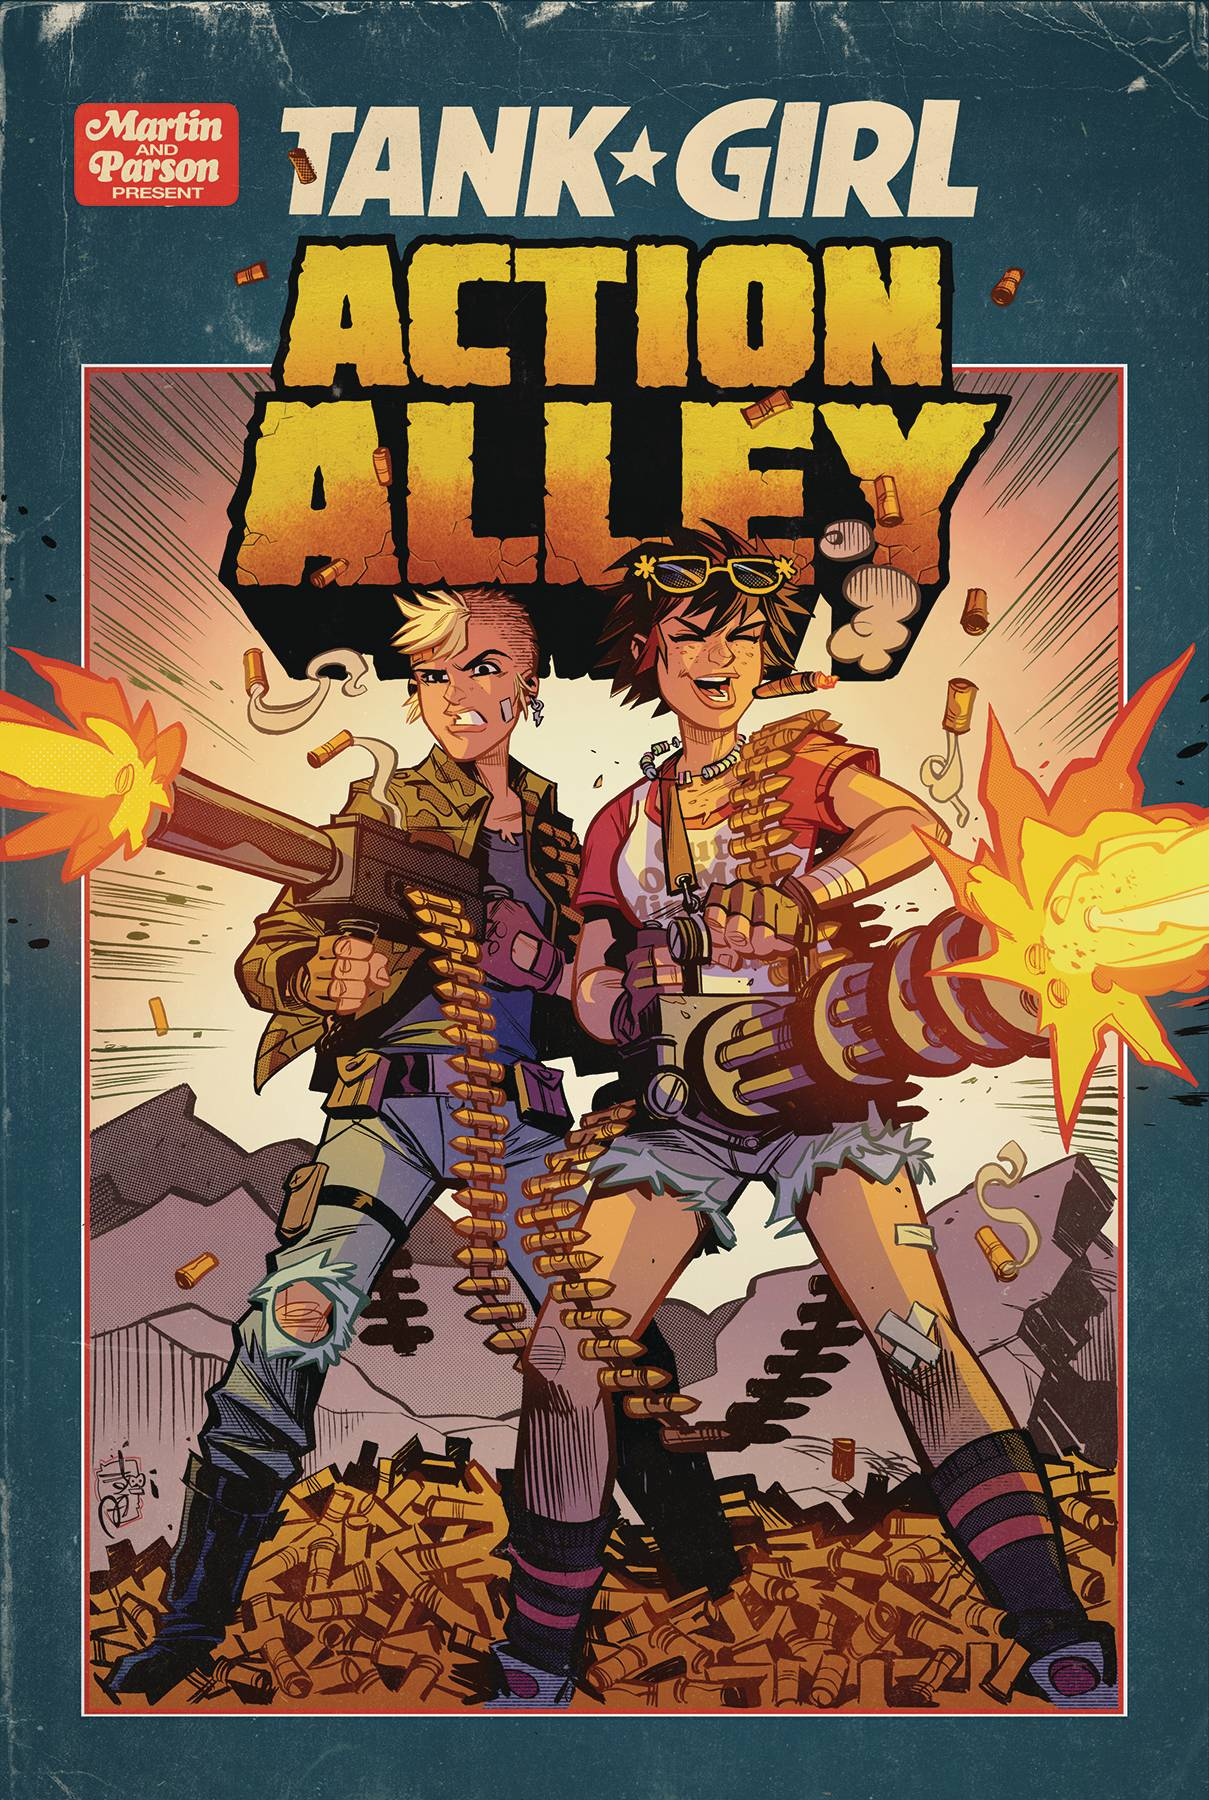 TANK GIRL ACTION ALLEY 3 CVR A PARSON.jpg